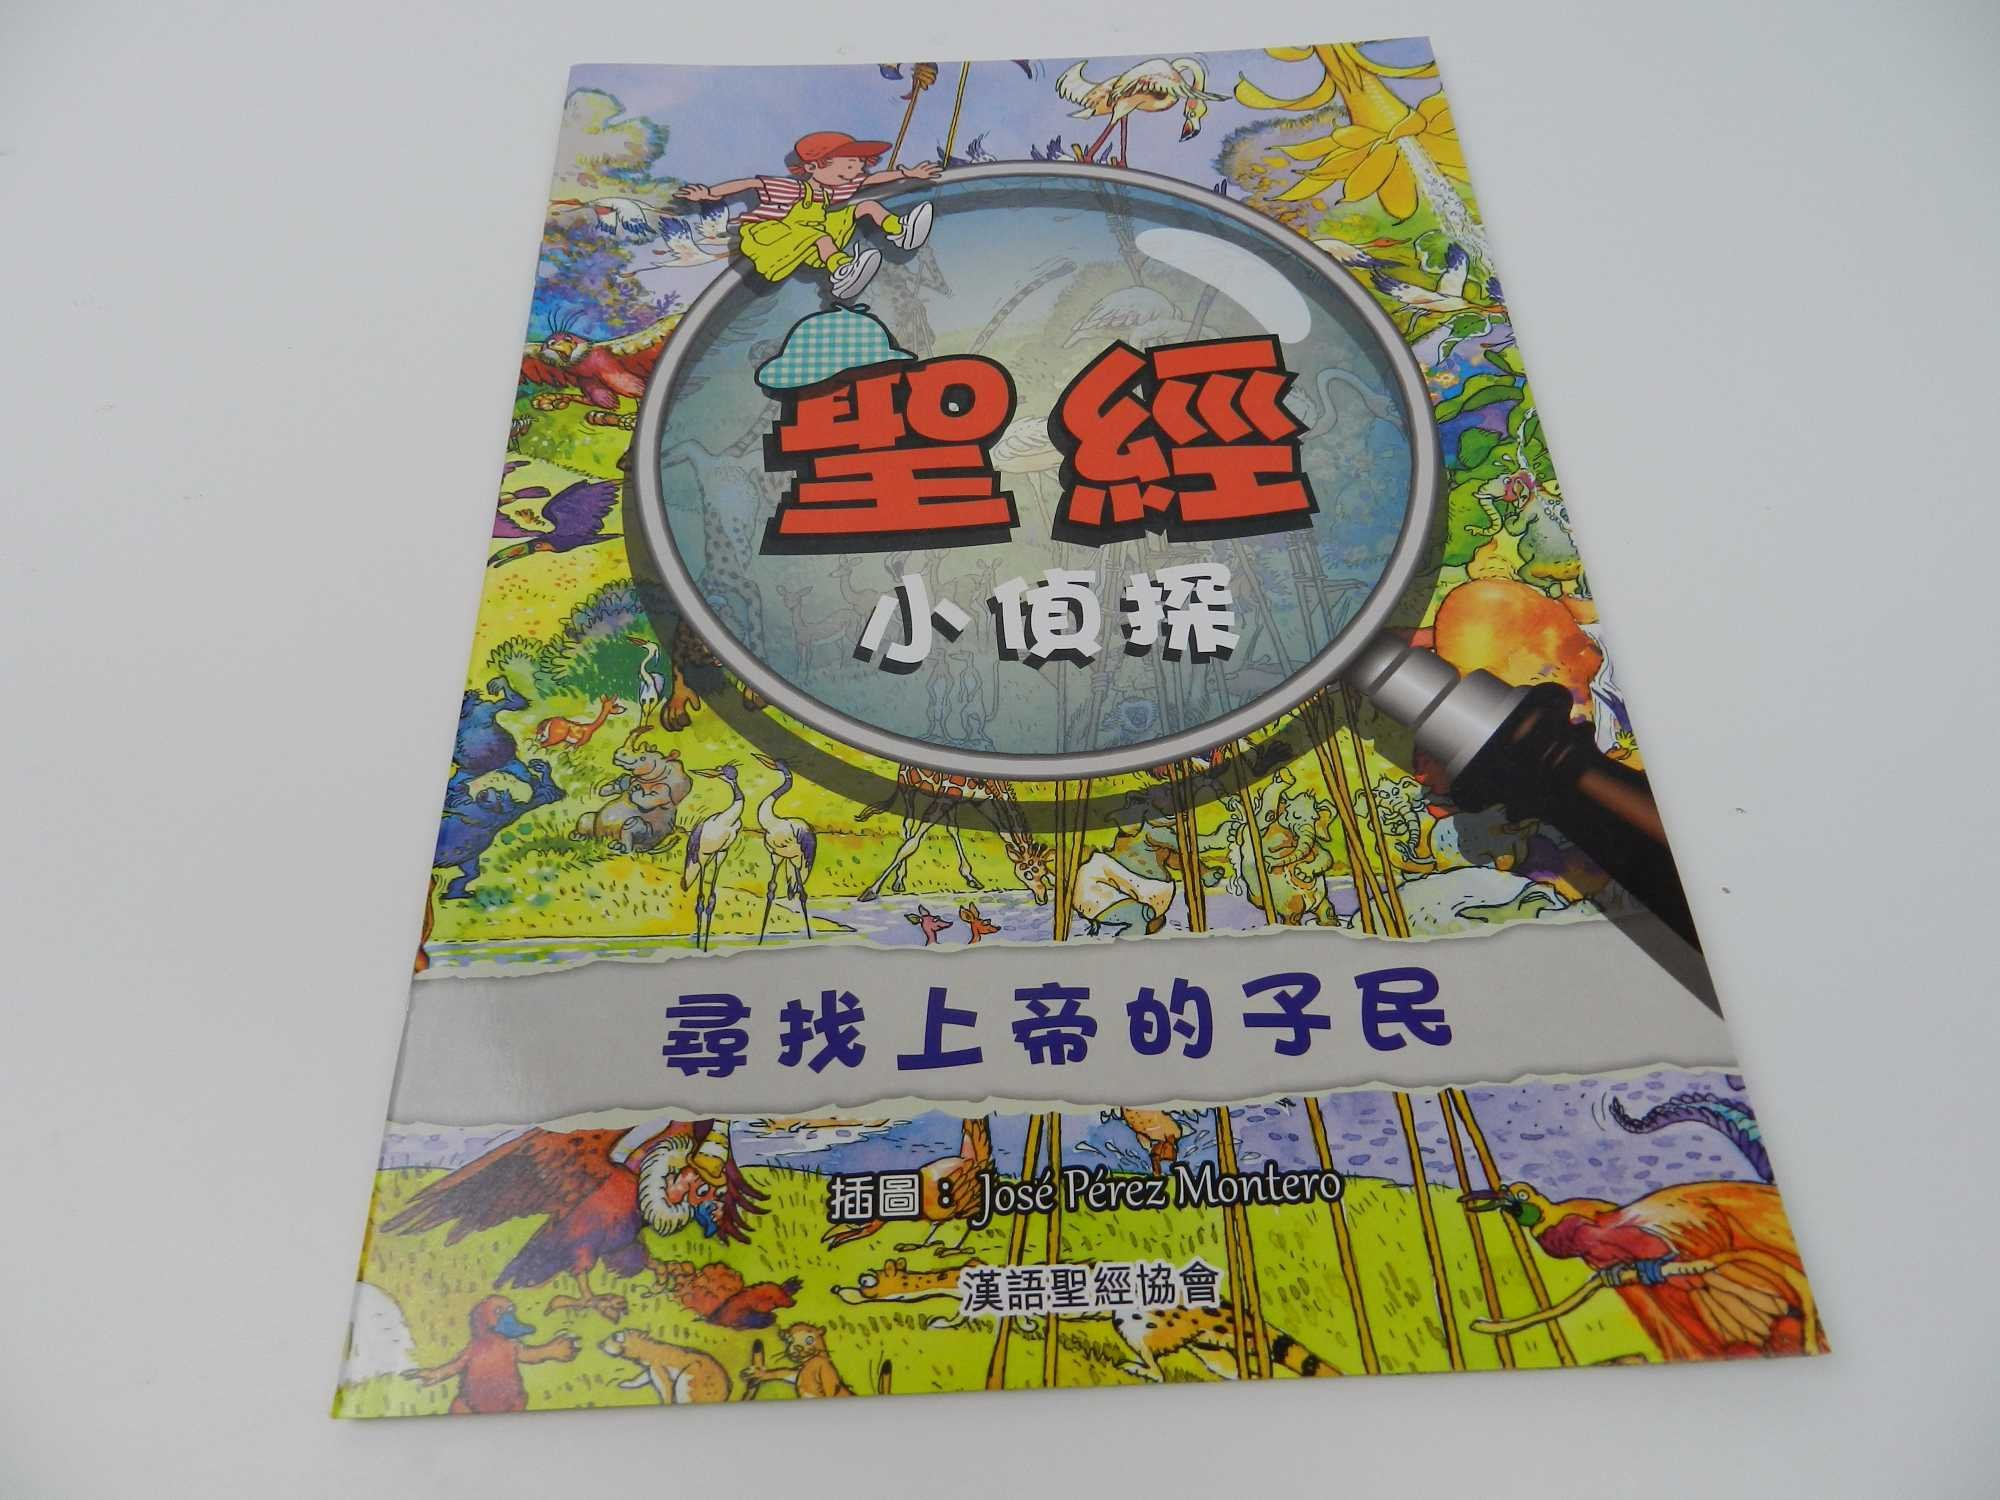 Download 聖經小偵探:尋找上帝的子民 / Bible Detective - Looking For God's People / Chinese Language Children's Bible, Hidden Objects Activity Book / Traditional Chinese Script pdf